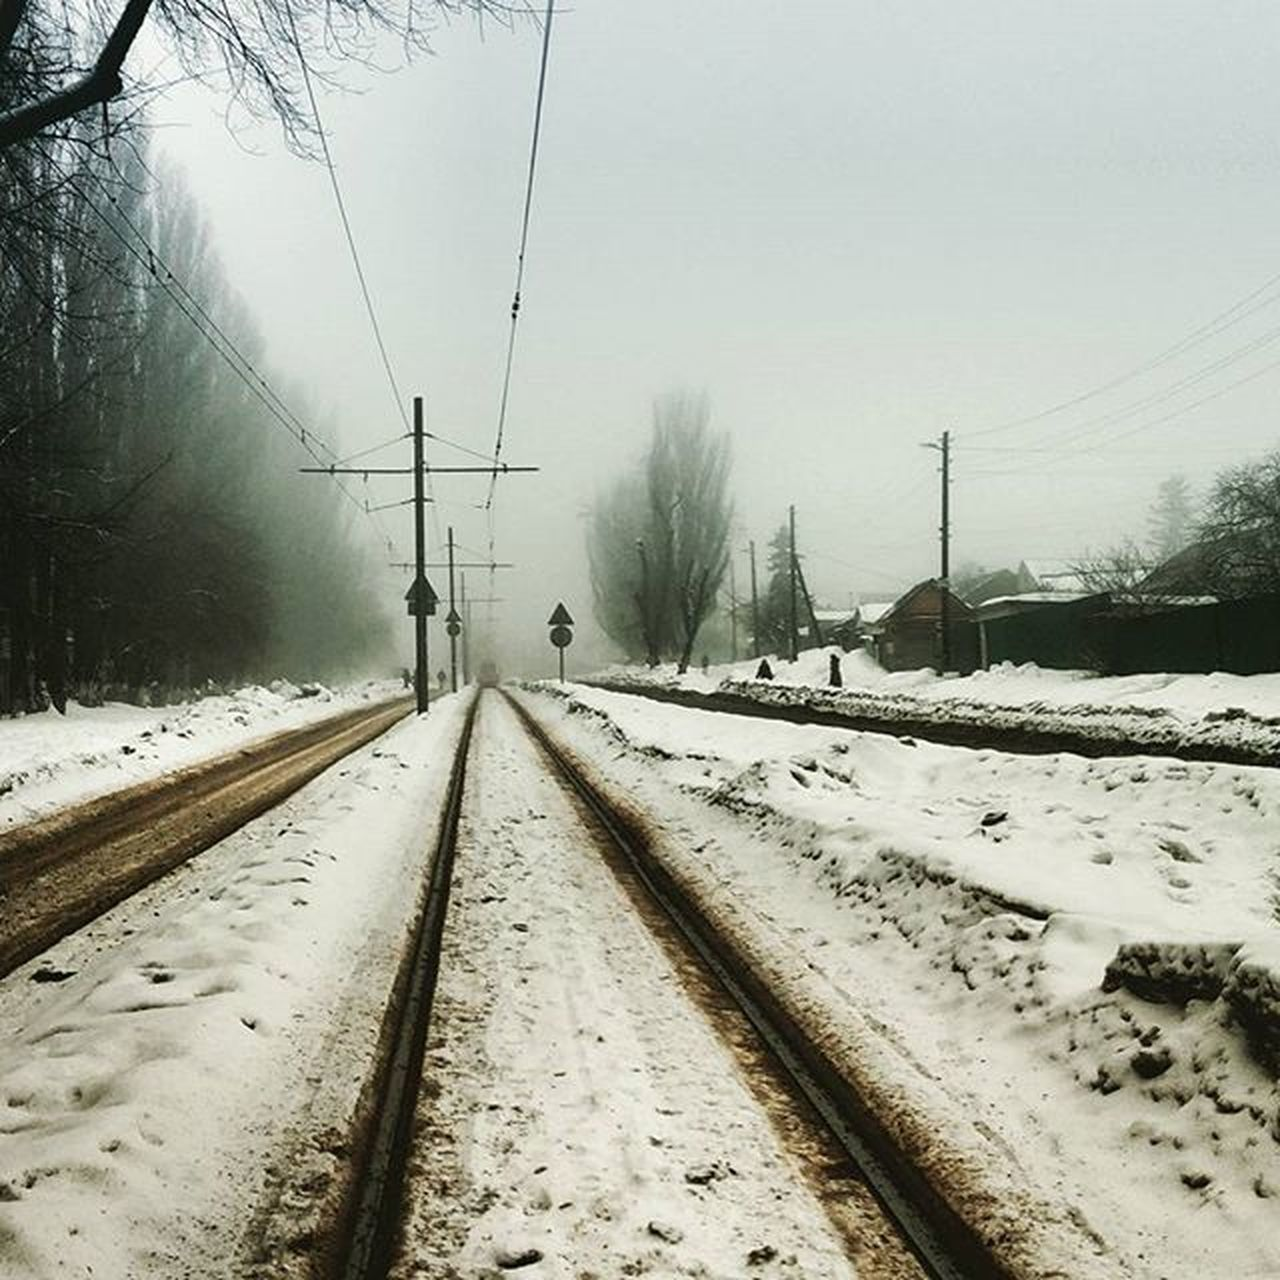 snow, cold temperature, winter, transportation, rail transportation, track, railroad track, tree, cable, covering, nature, sky, direction, electricity, the way forward, mode of transportation, no people, white color, land, diminishing perspective, outdoors, snowcapped mountain